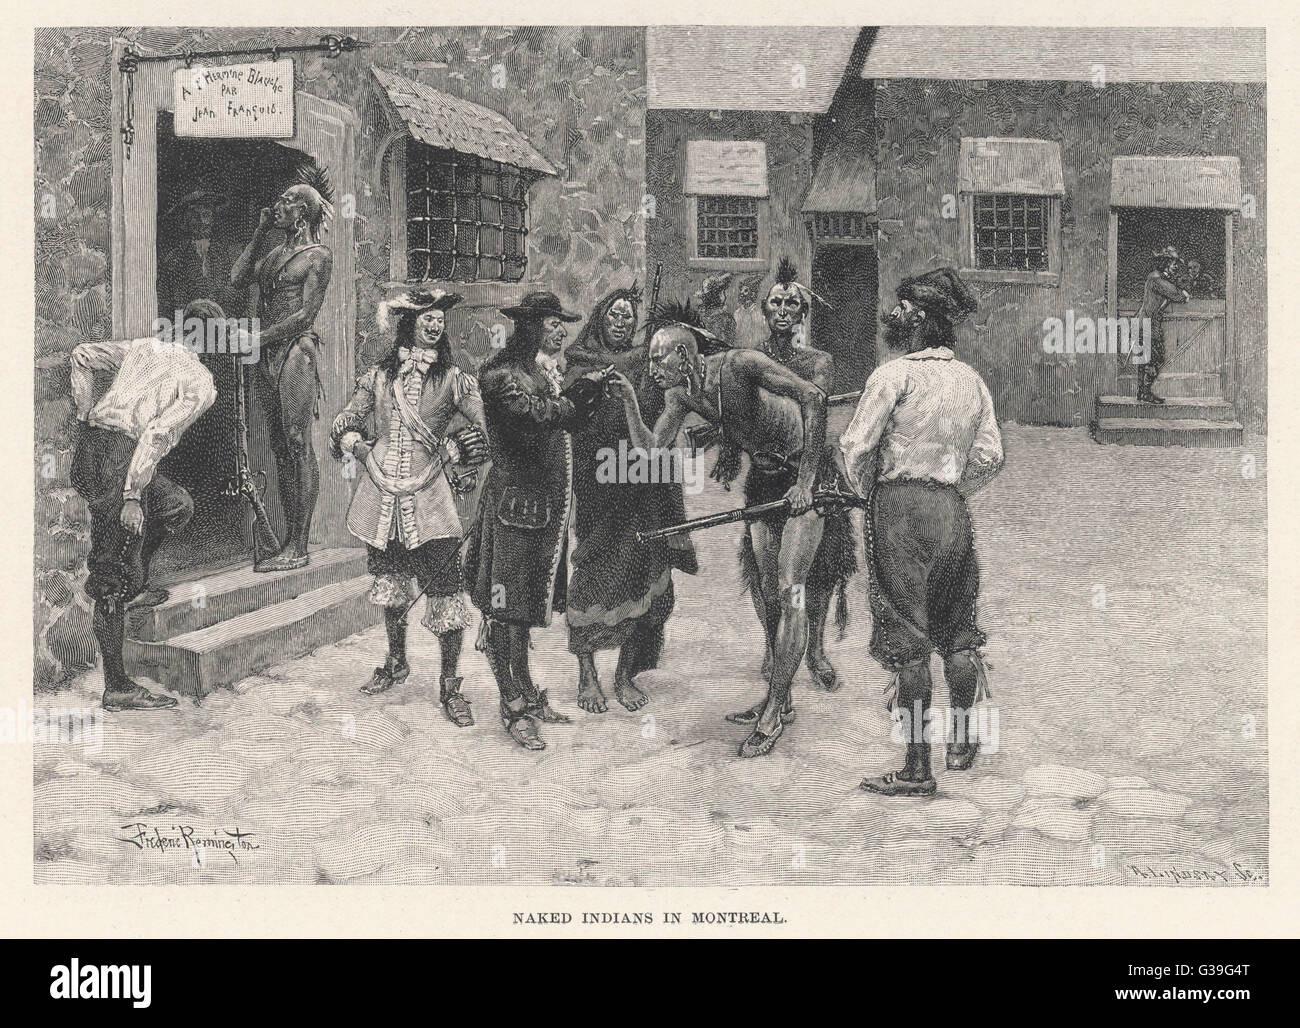 Native Canadians meet French  settlers with mutual  astonishment in the streets  of Montreal       Date: 17th century - Stock Image